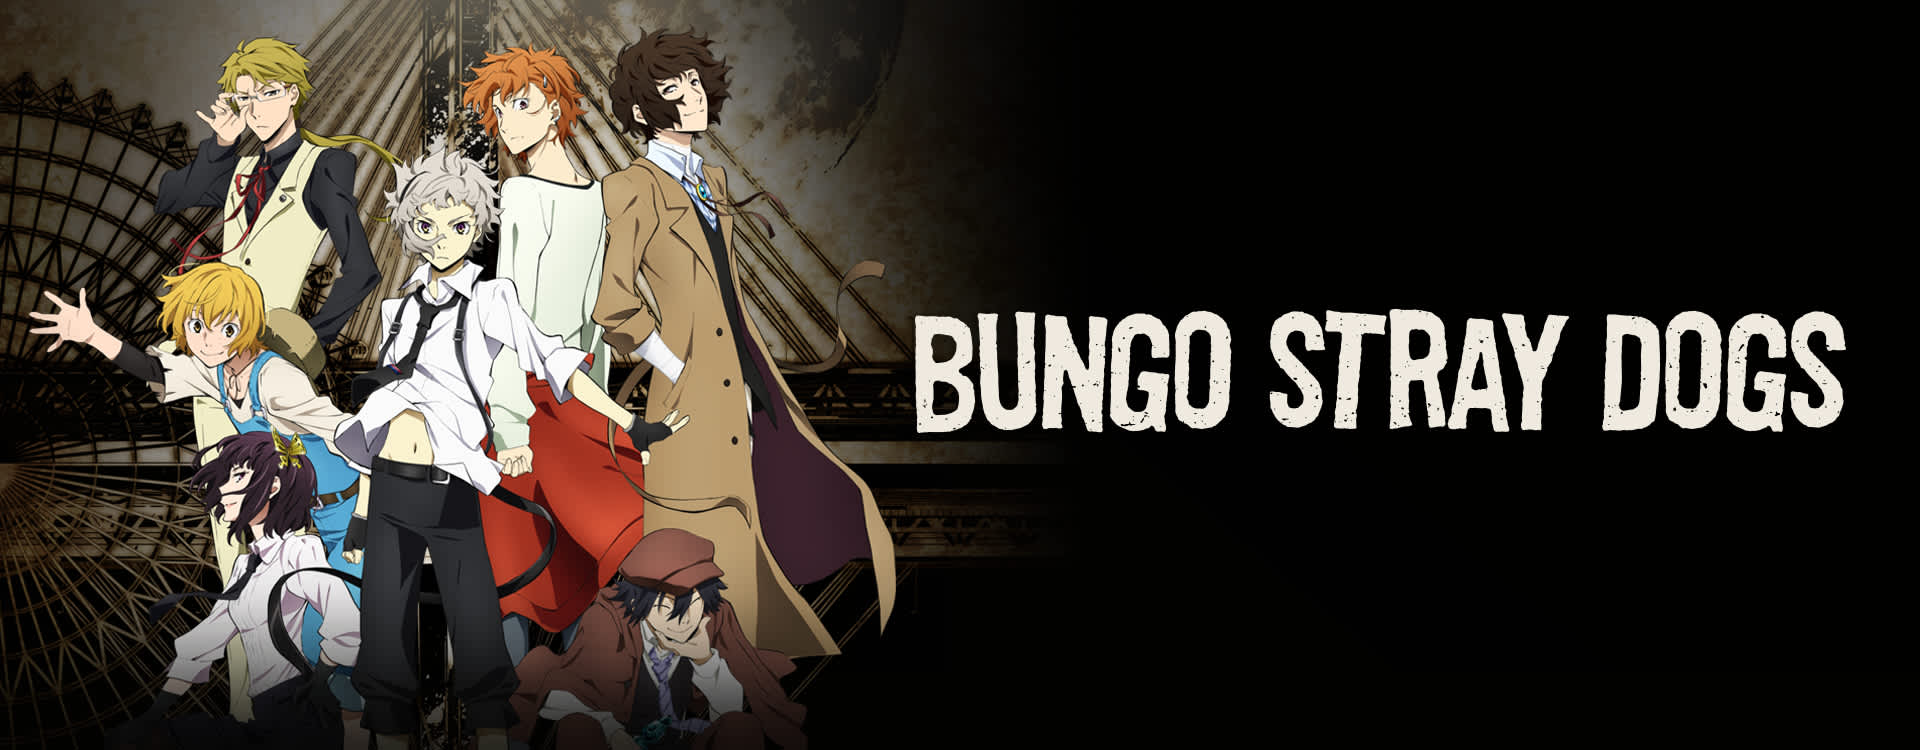 Bungou Stray Dogs Ger Dub